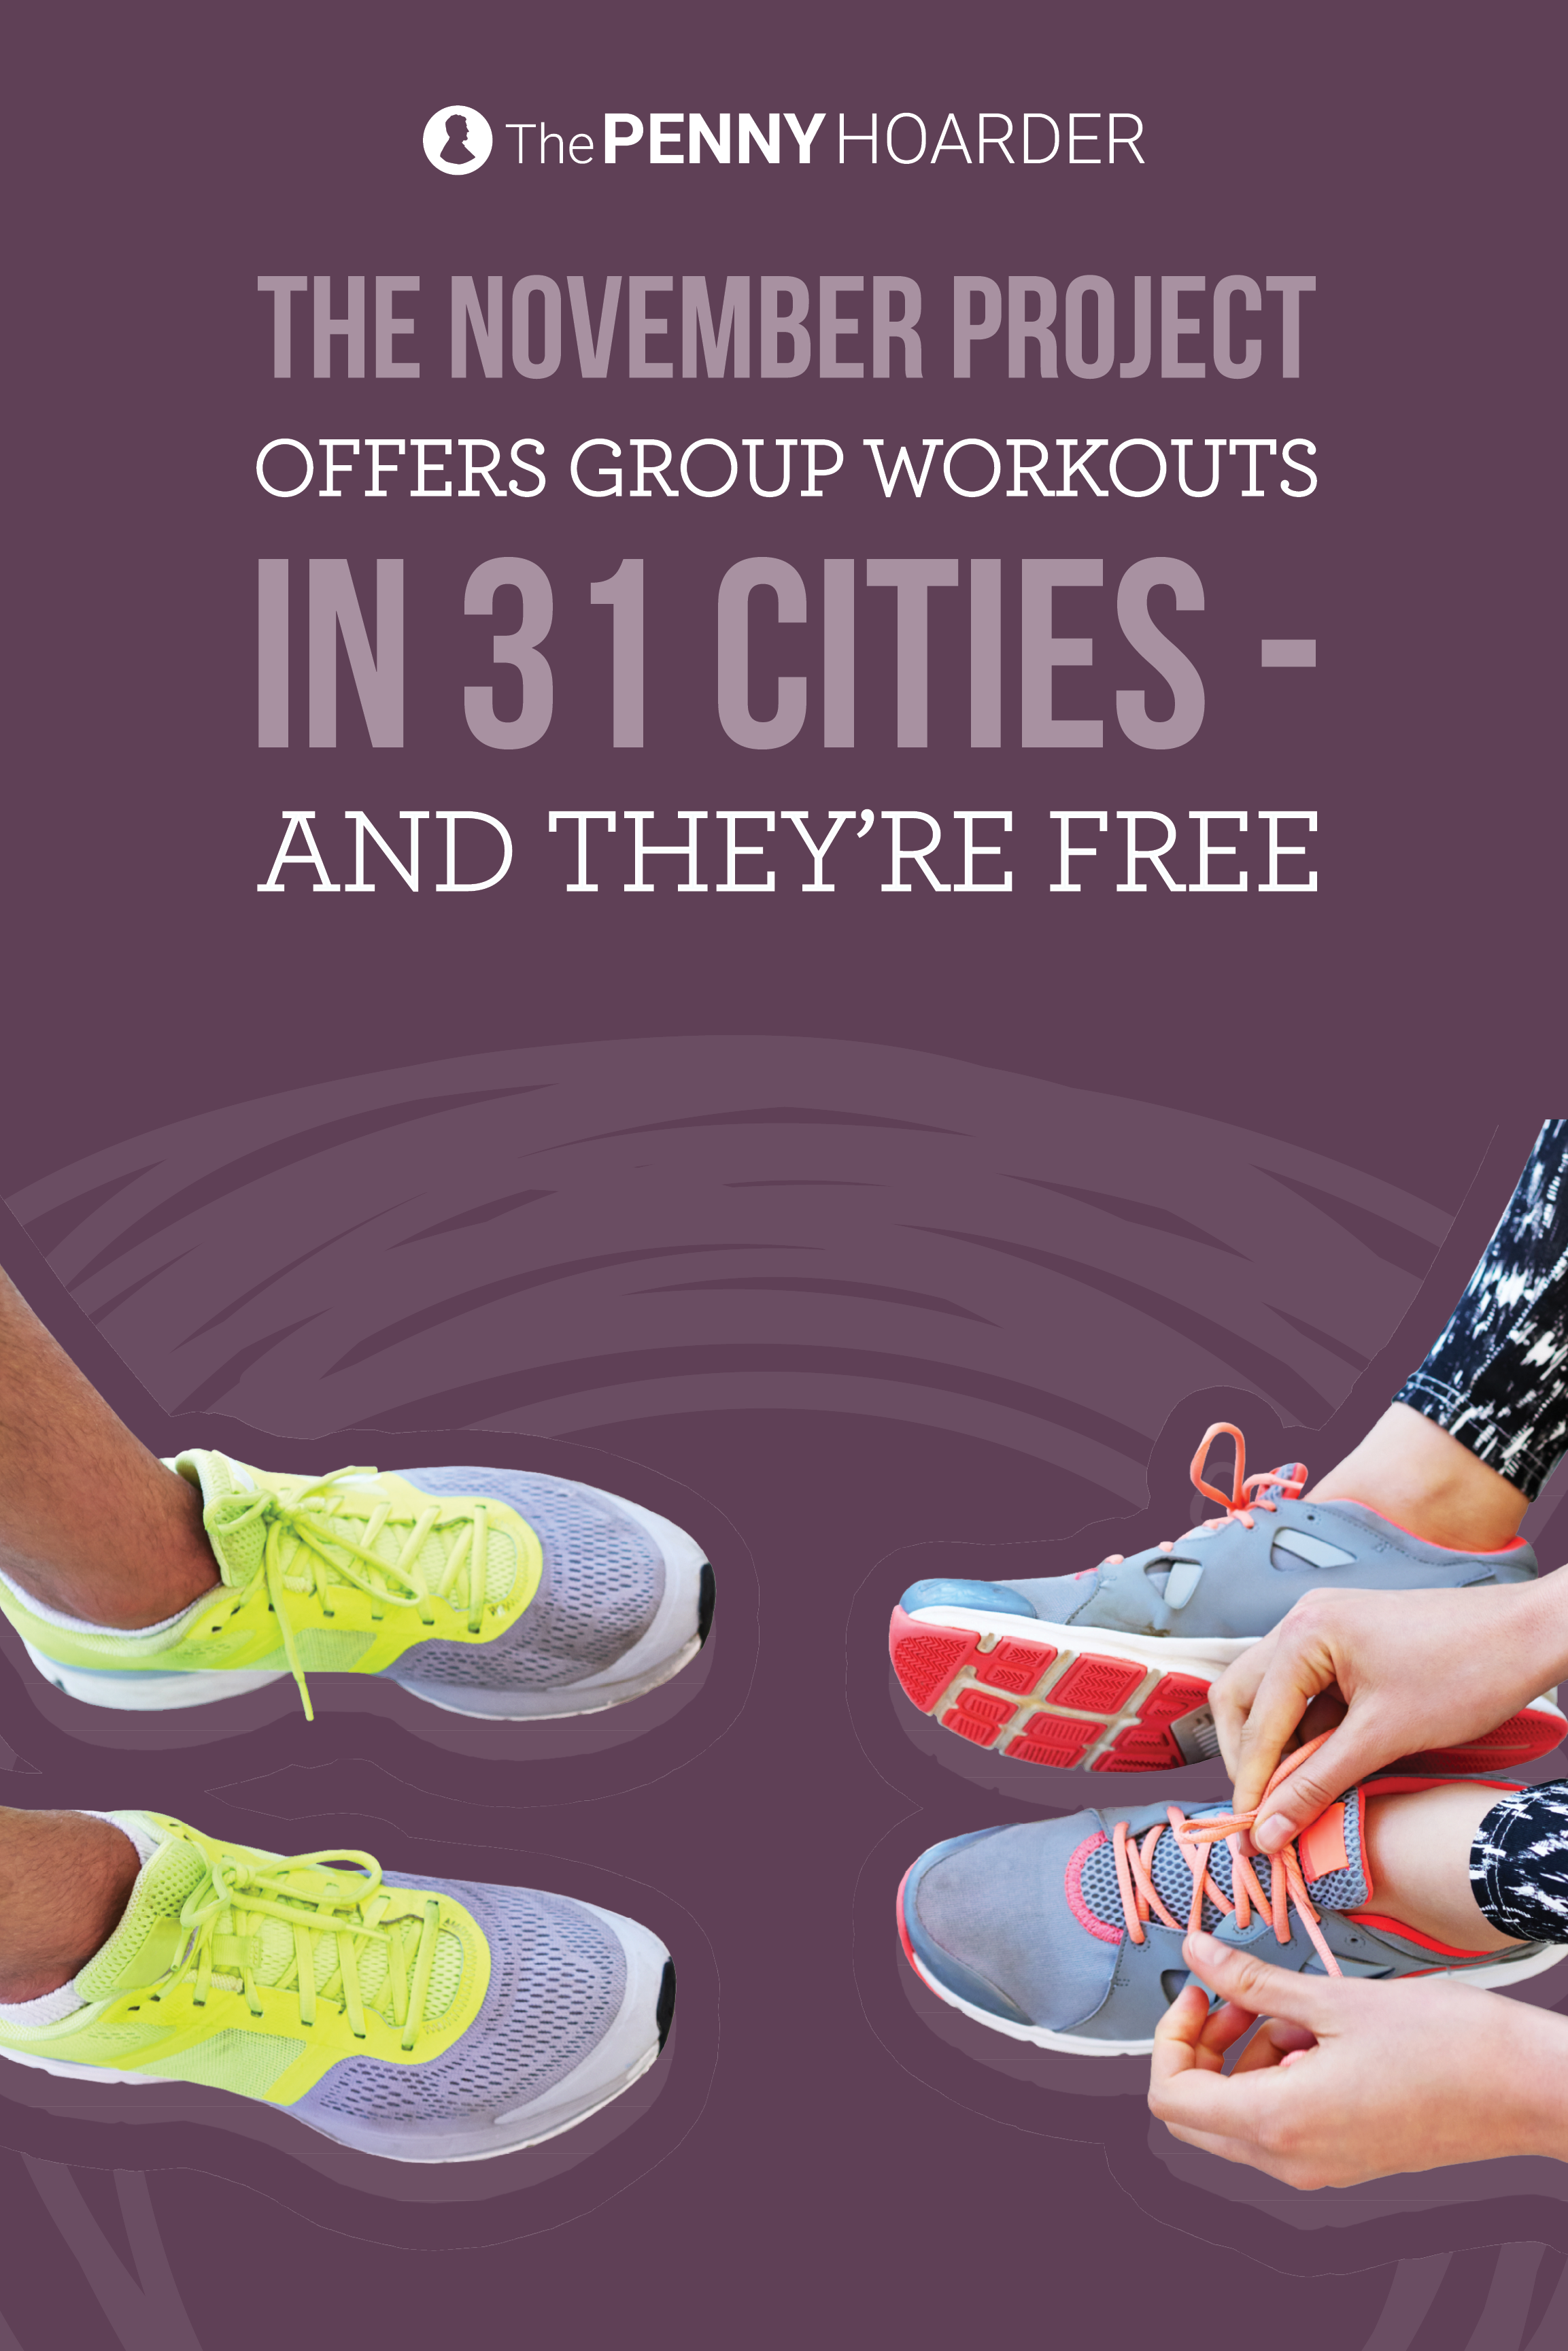 Need some winter workout motivation? Me too. Here's where to find free workouts in 31 cities... @thepennyhoarder